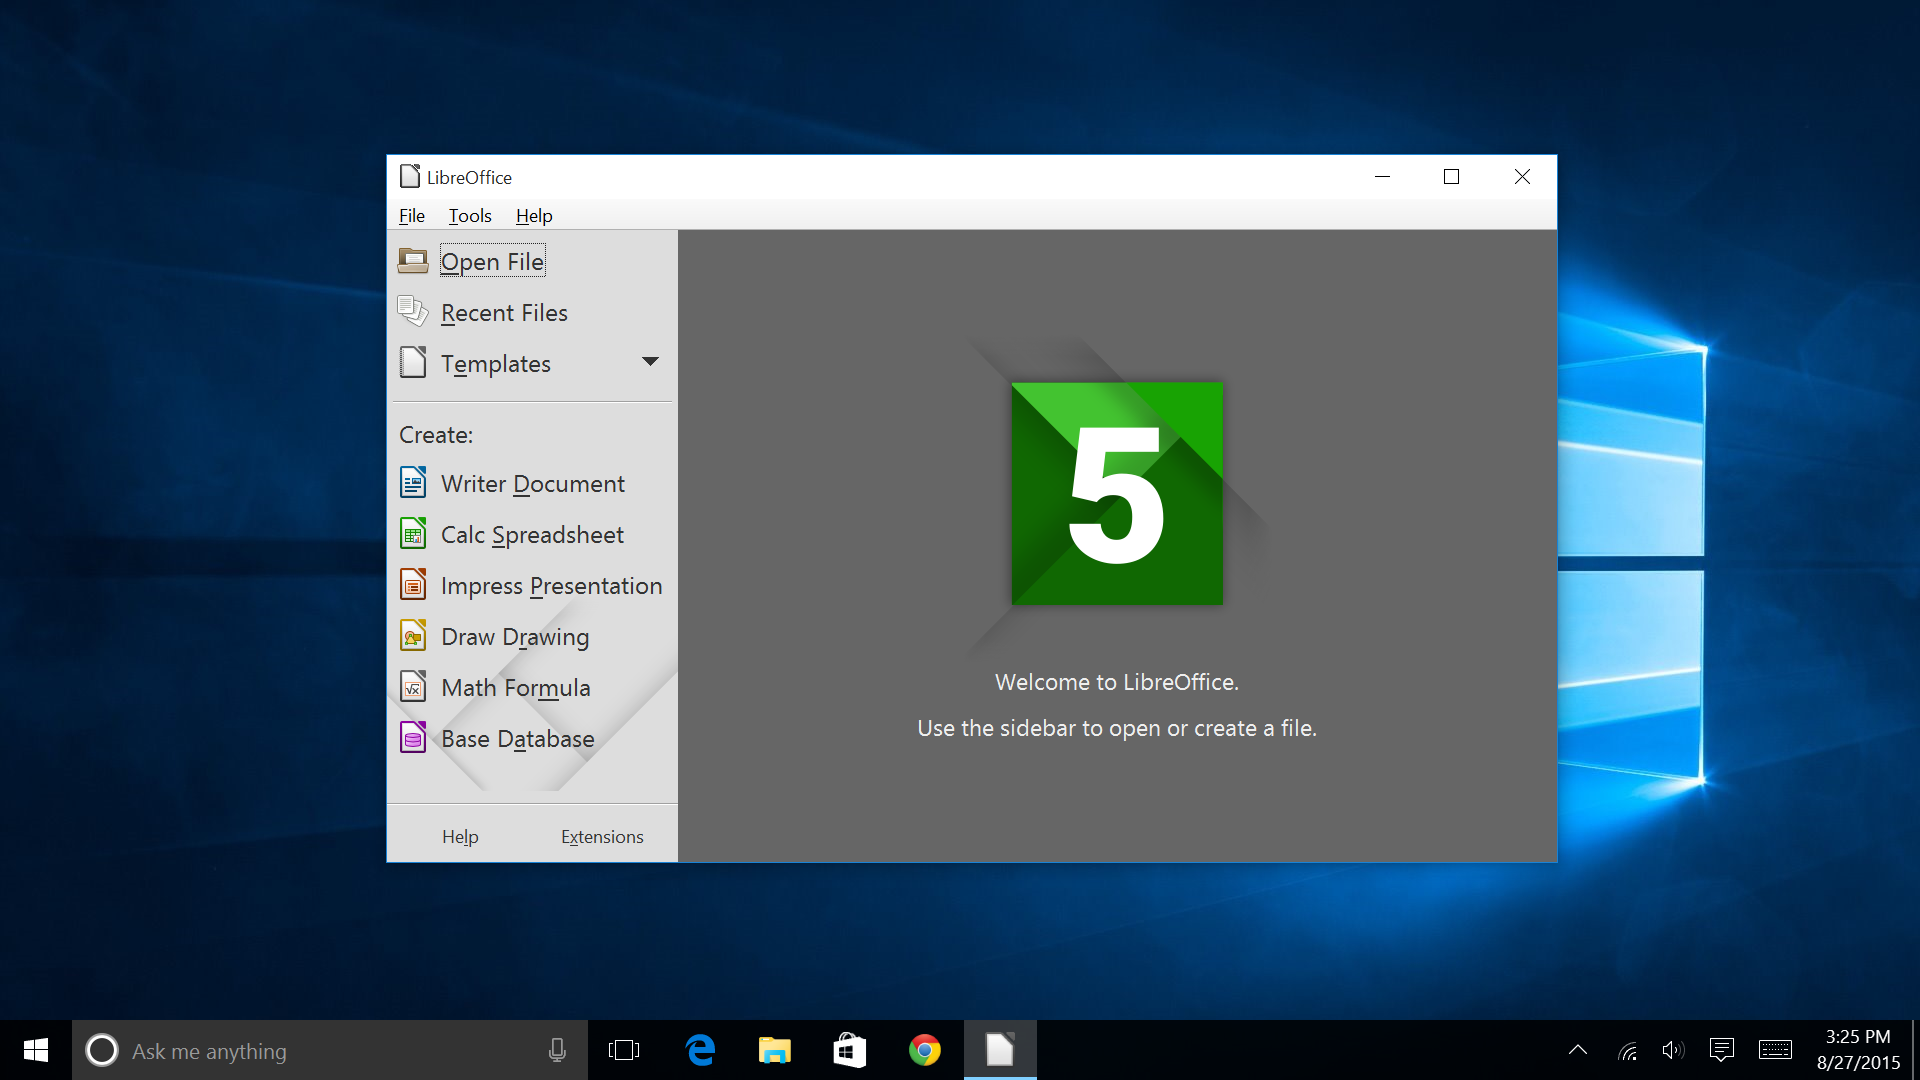 libreoffice download windows 8.1 64 bit